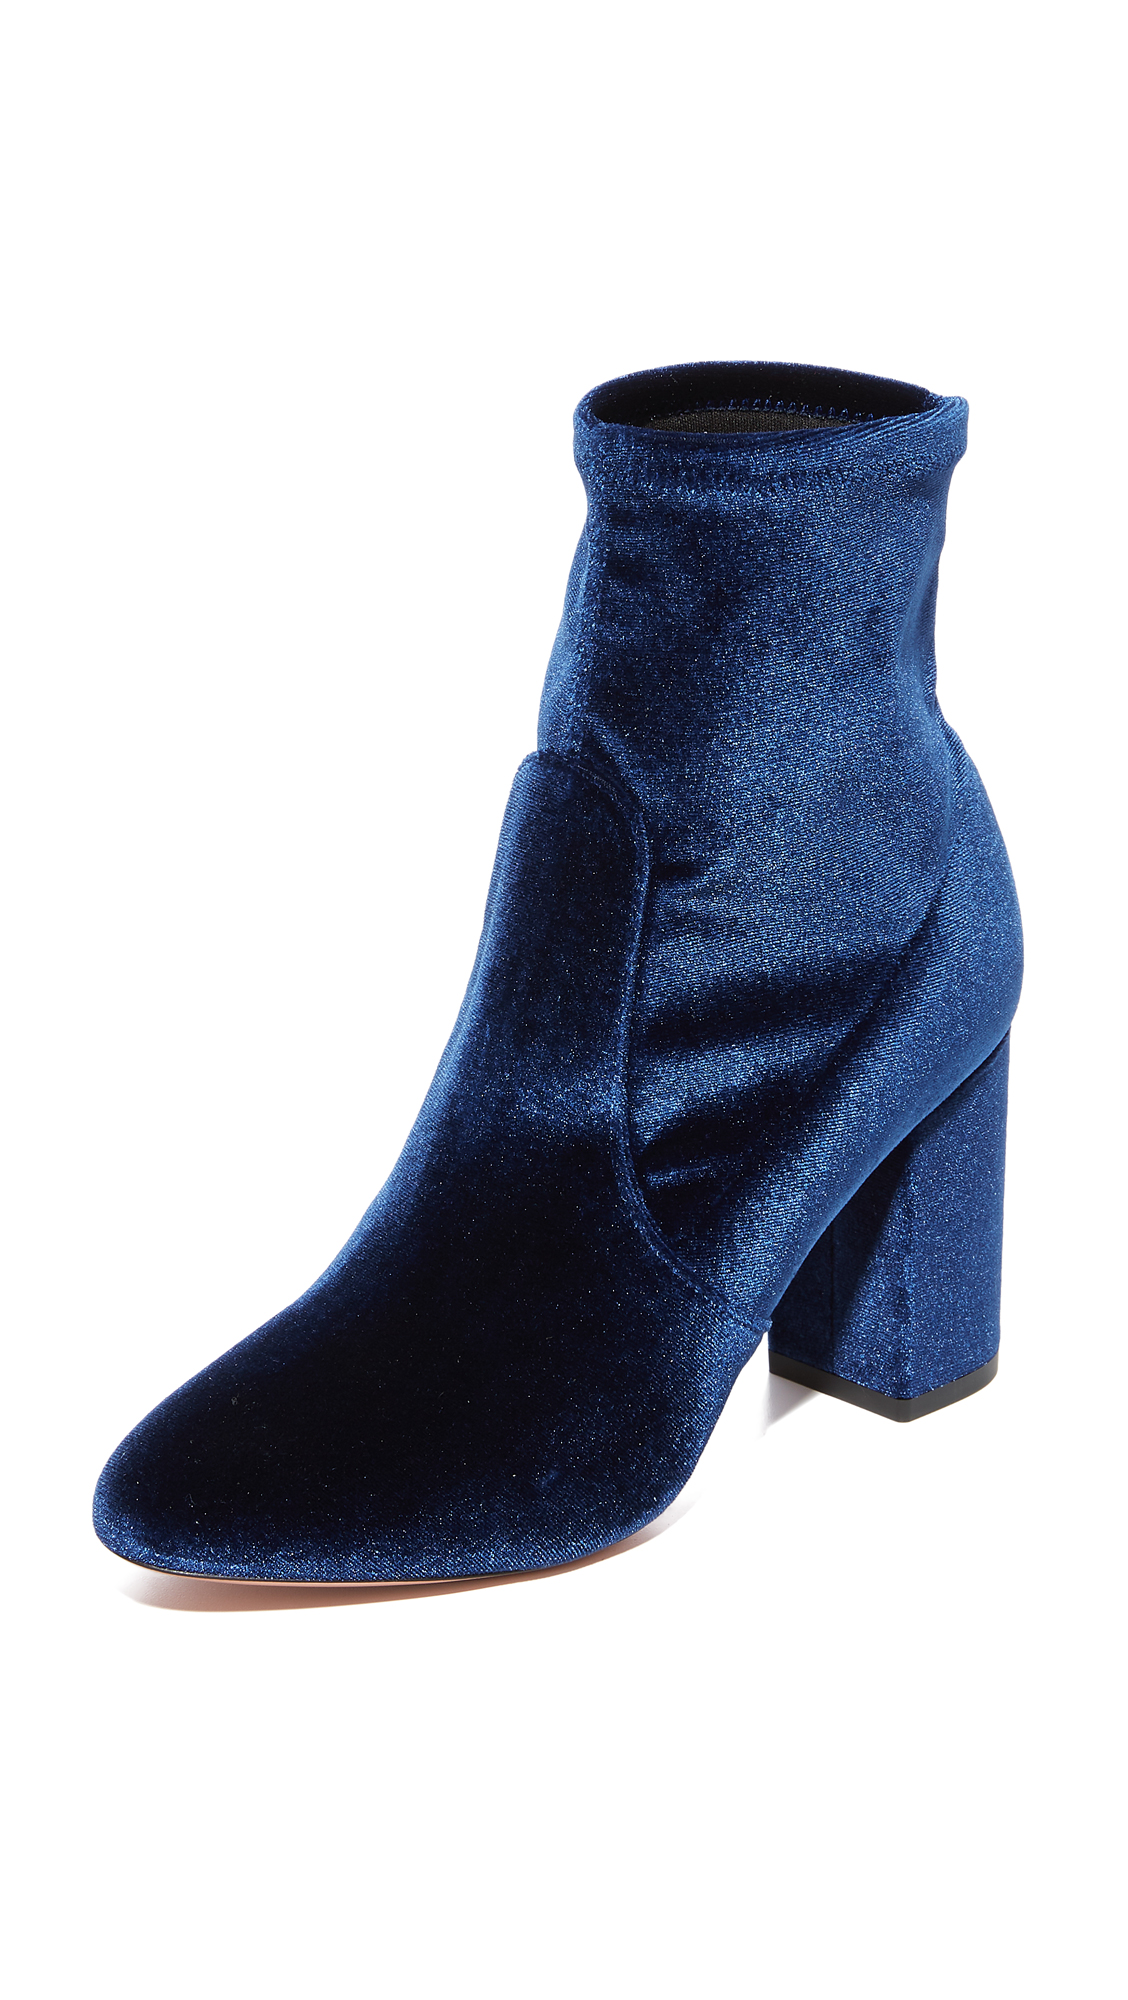 Aquazzura So Me 85 Booties - Caspian Blue